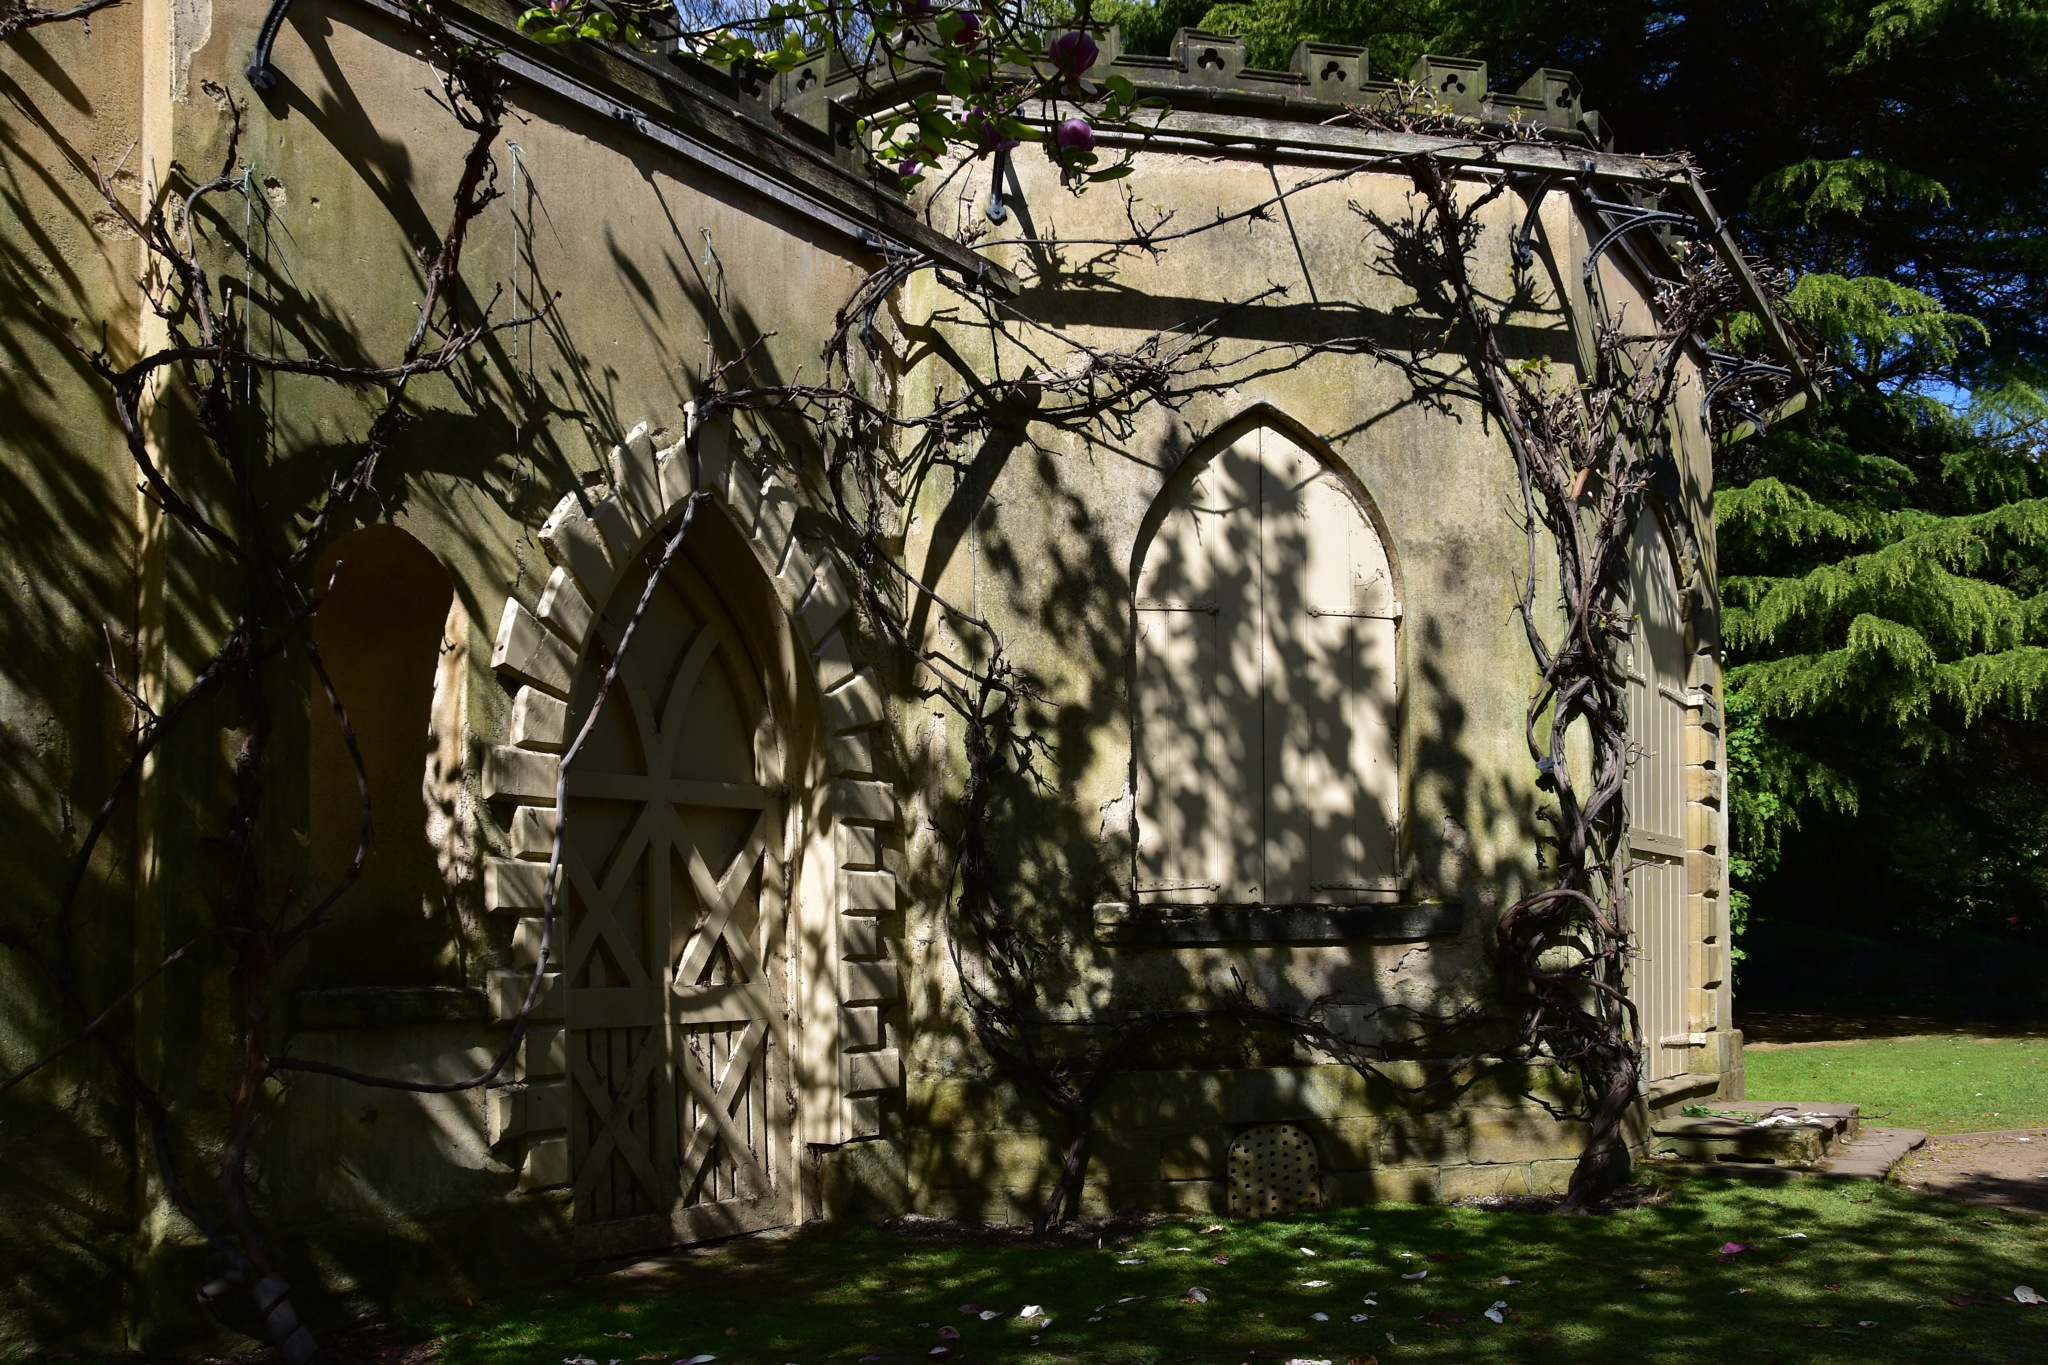 April late afternoon shadows. The Gothic Menagerie, Nostell Priory, UK. by Ron Thornton